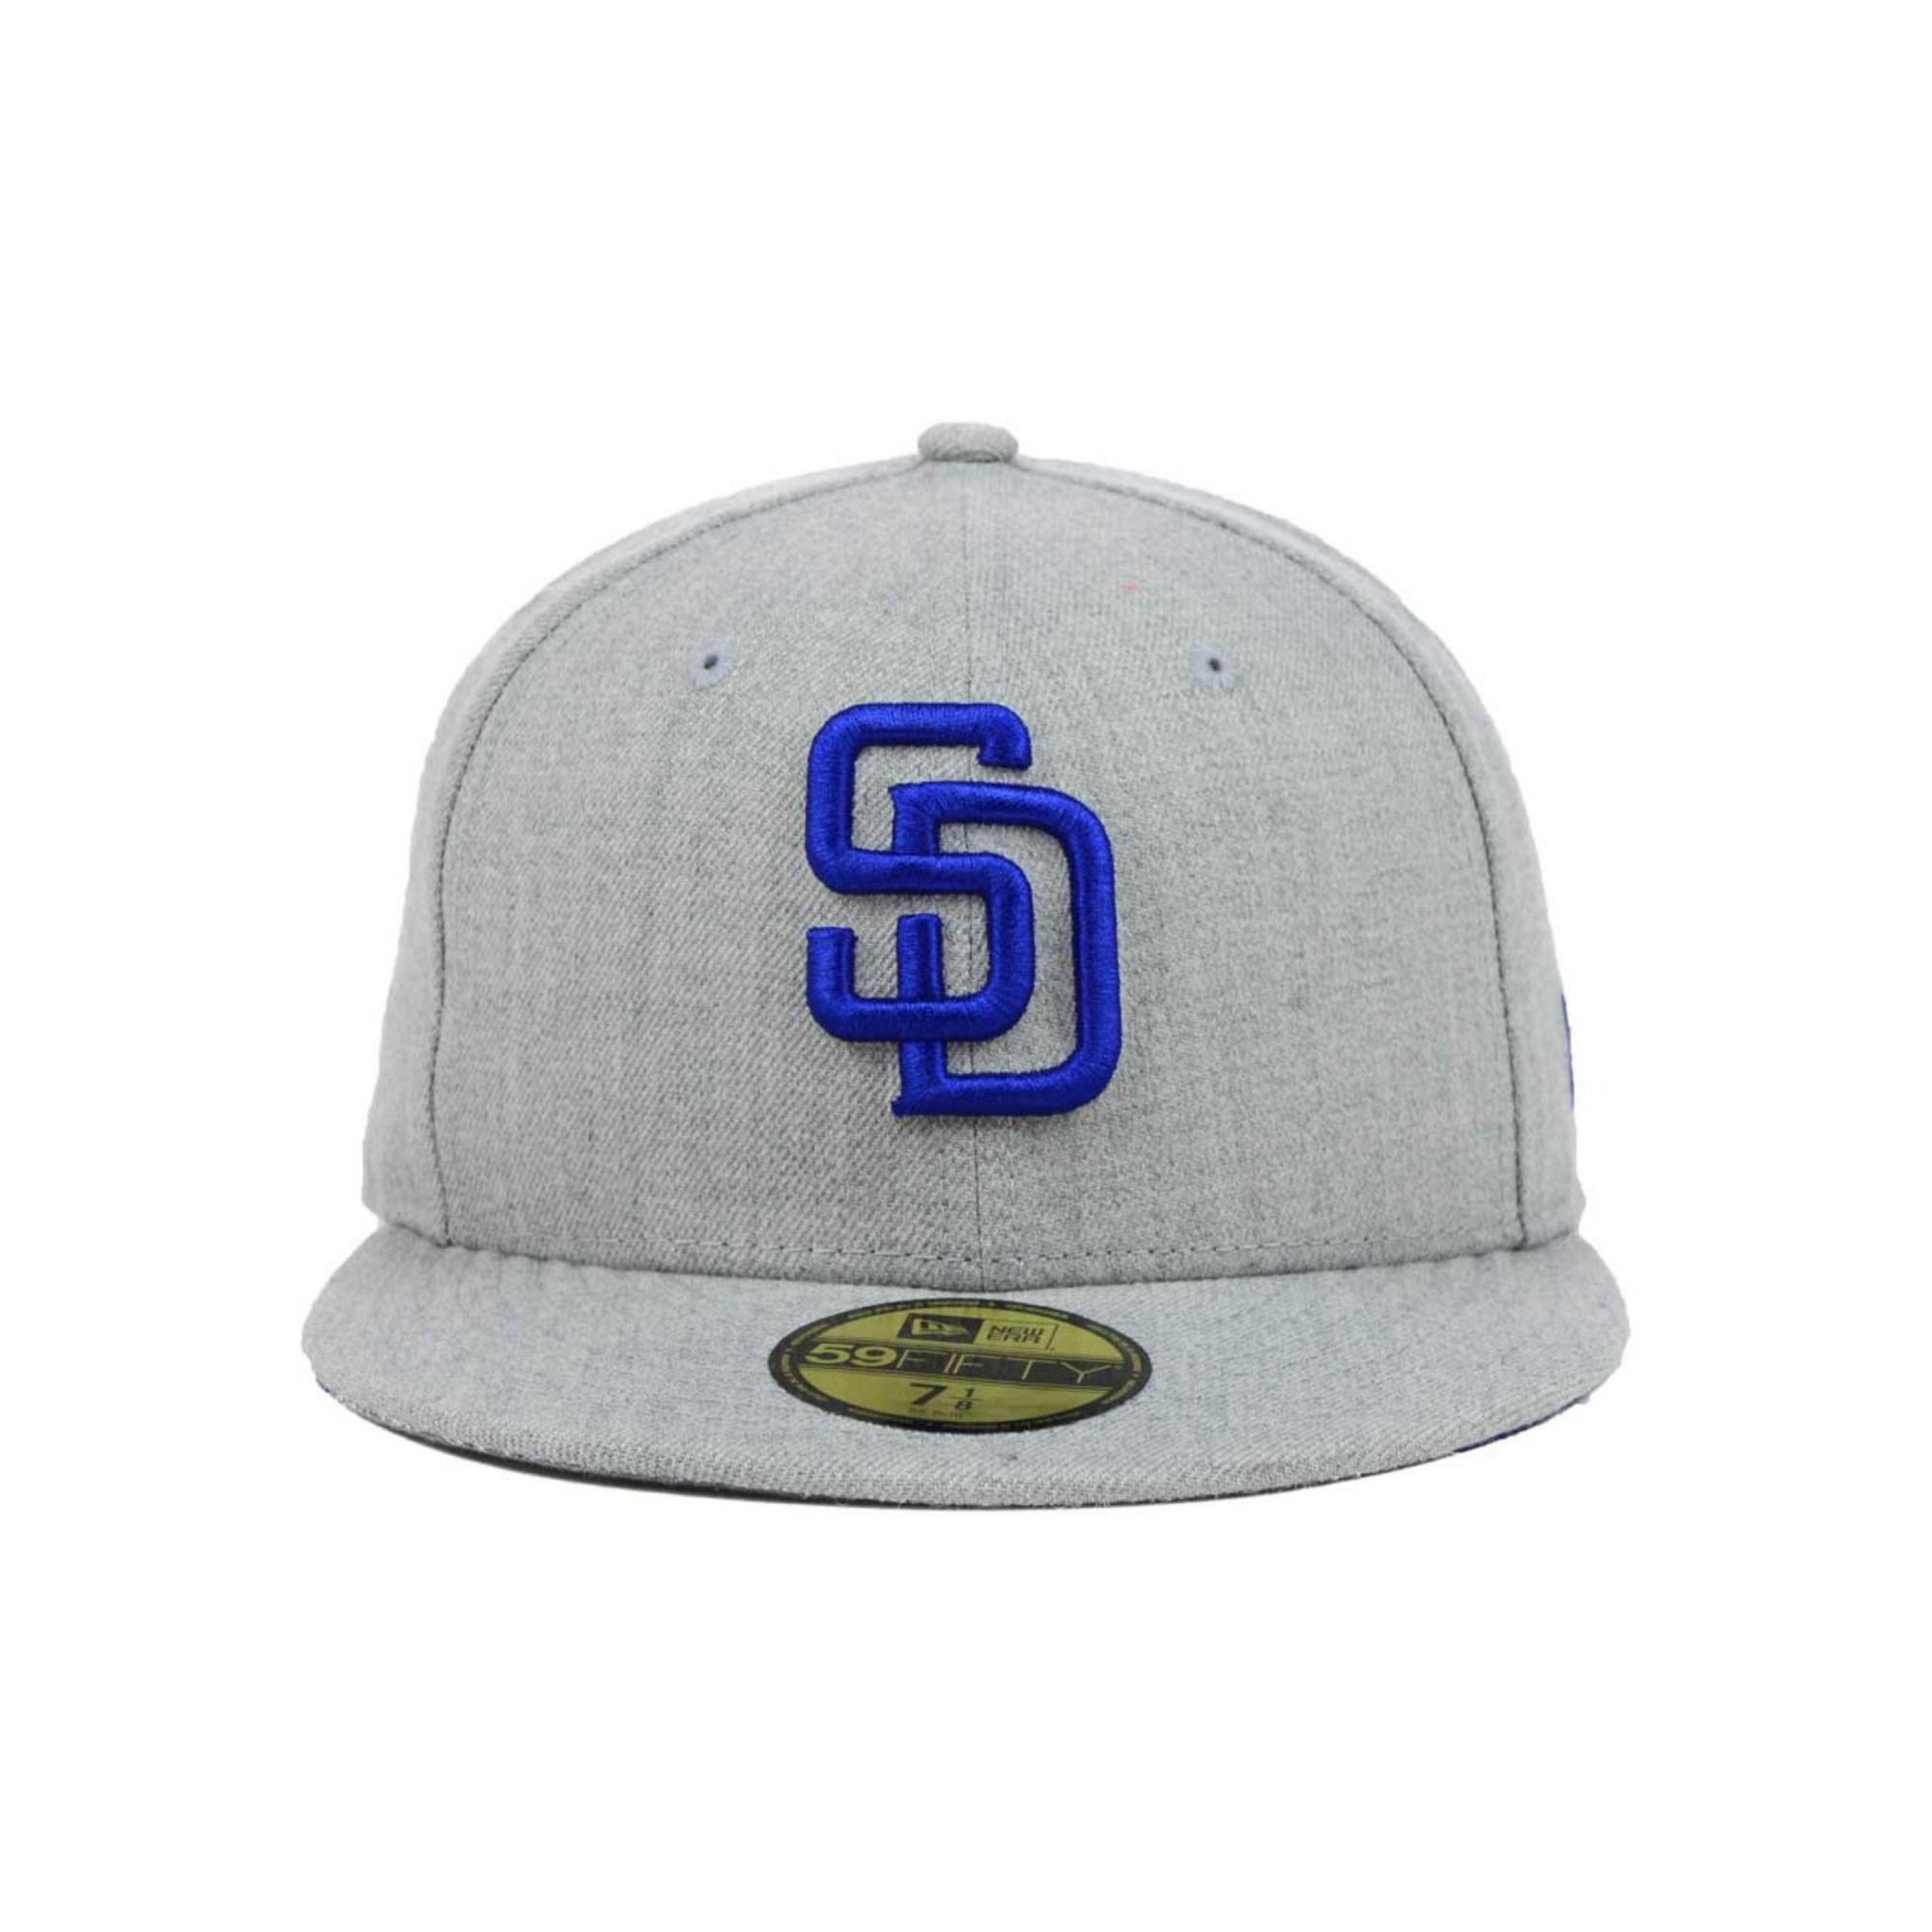 b82236fccd4e3 ... cheap fitted hat lyst ktz san diego padres mlb heather basic 59fifty  cap in gray b6d39